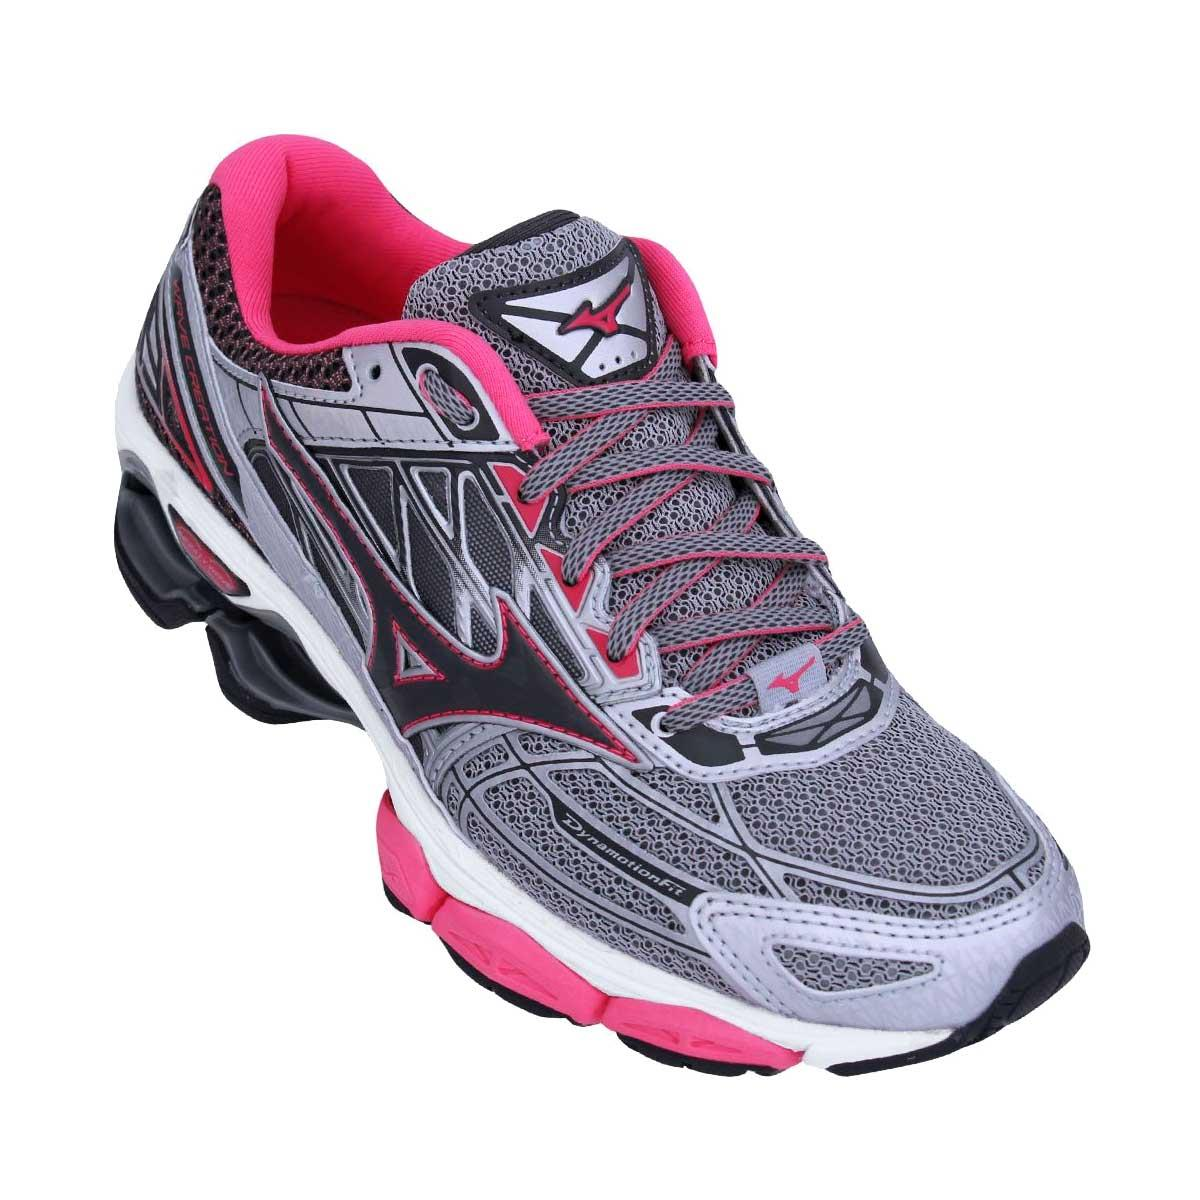 feb32f3d3f0 Tênis Mizuno Wave Creation 19 2018 Feminino